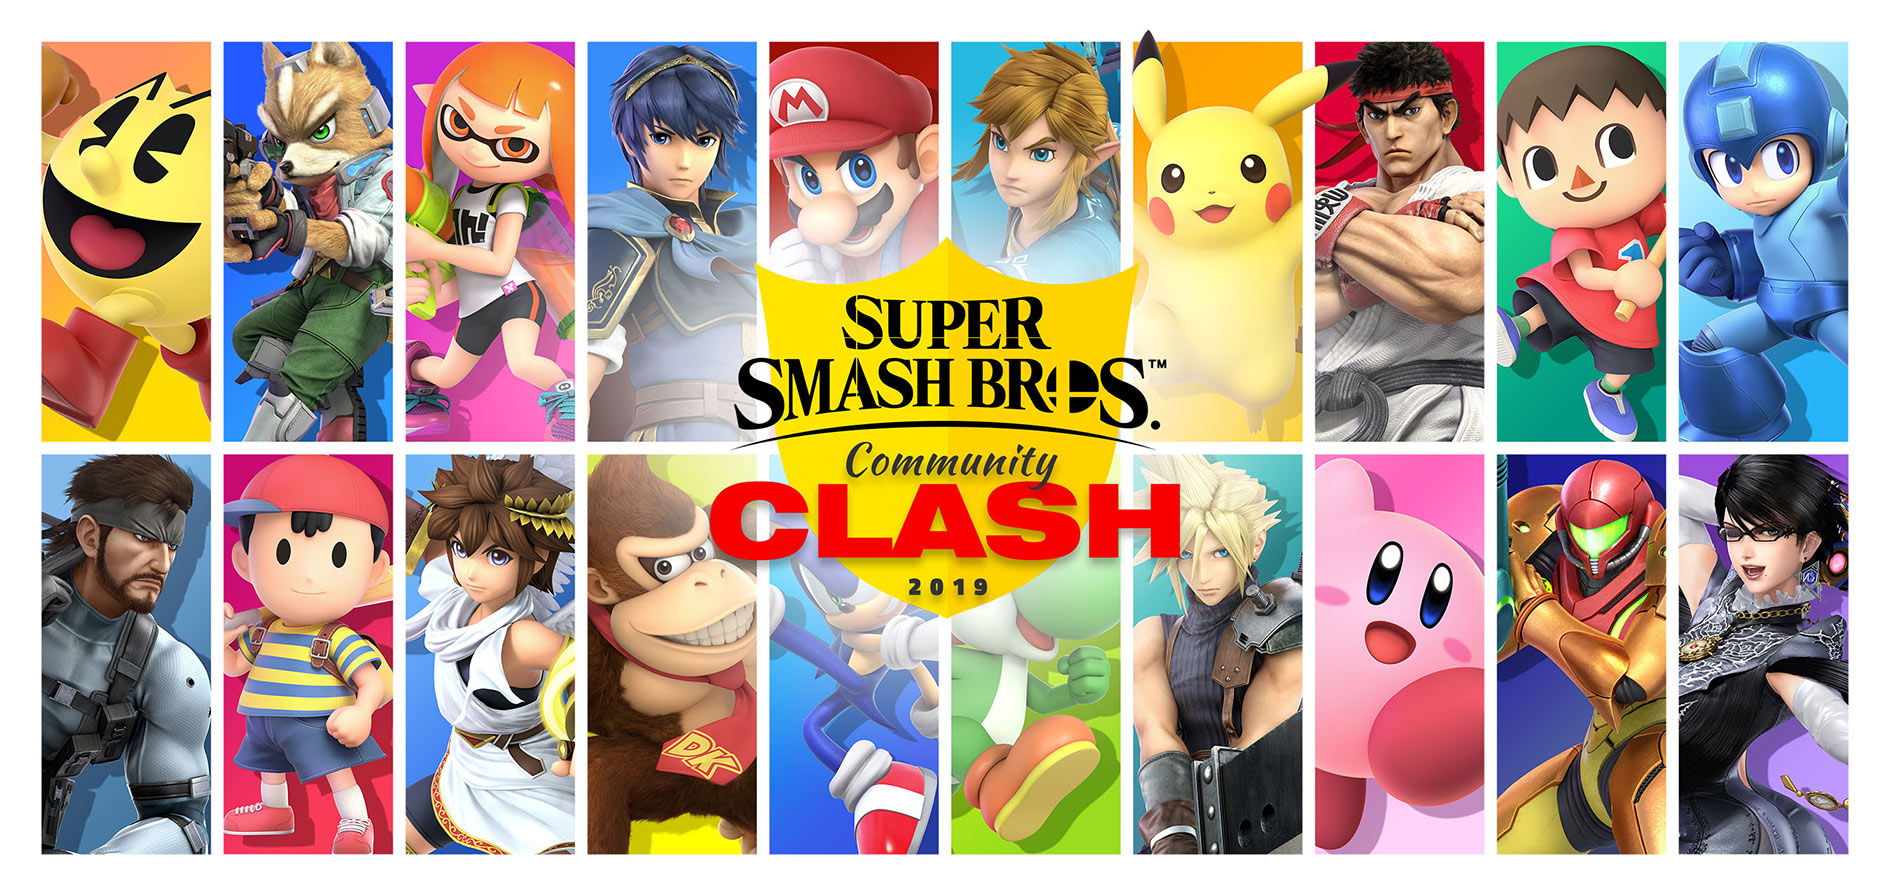 SUPER SMASH BROS. ULTIMATE COMMUNITY CLASH 2019